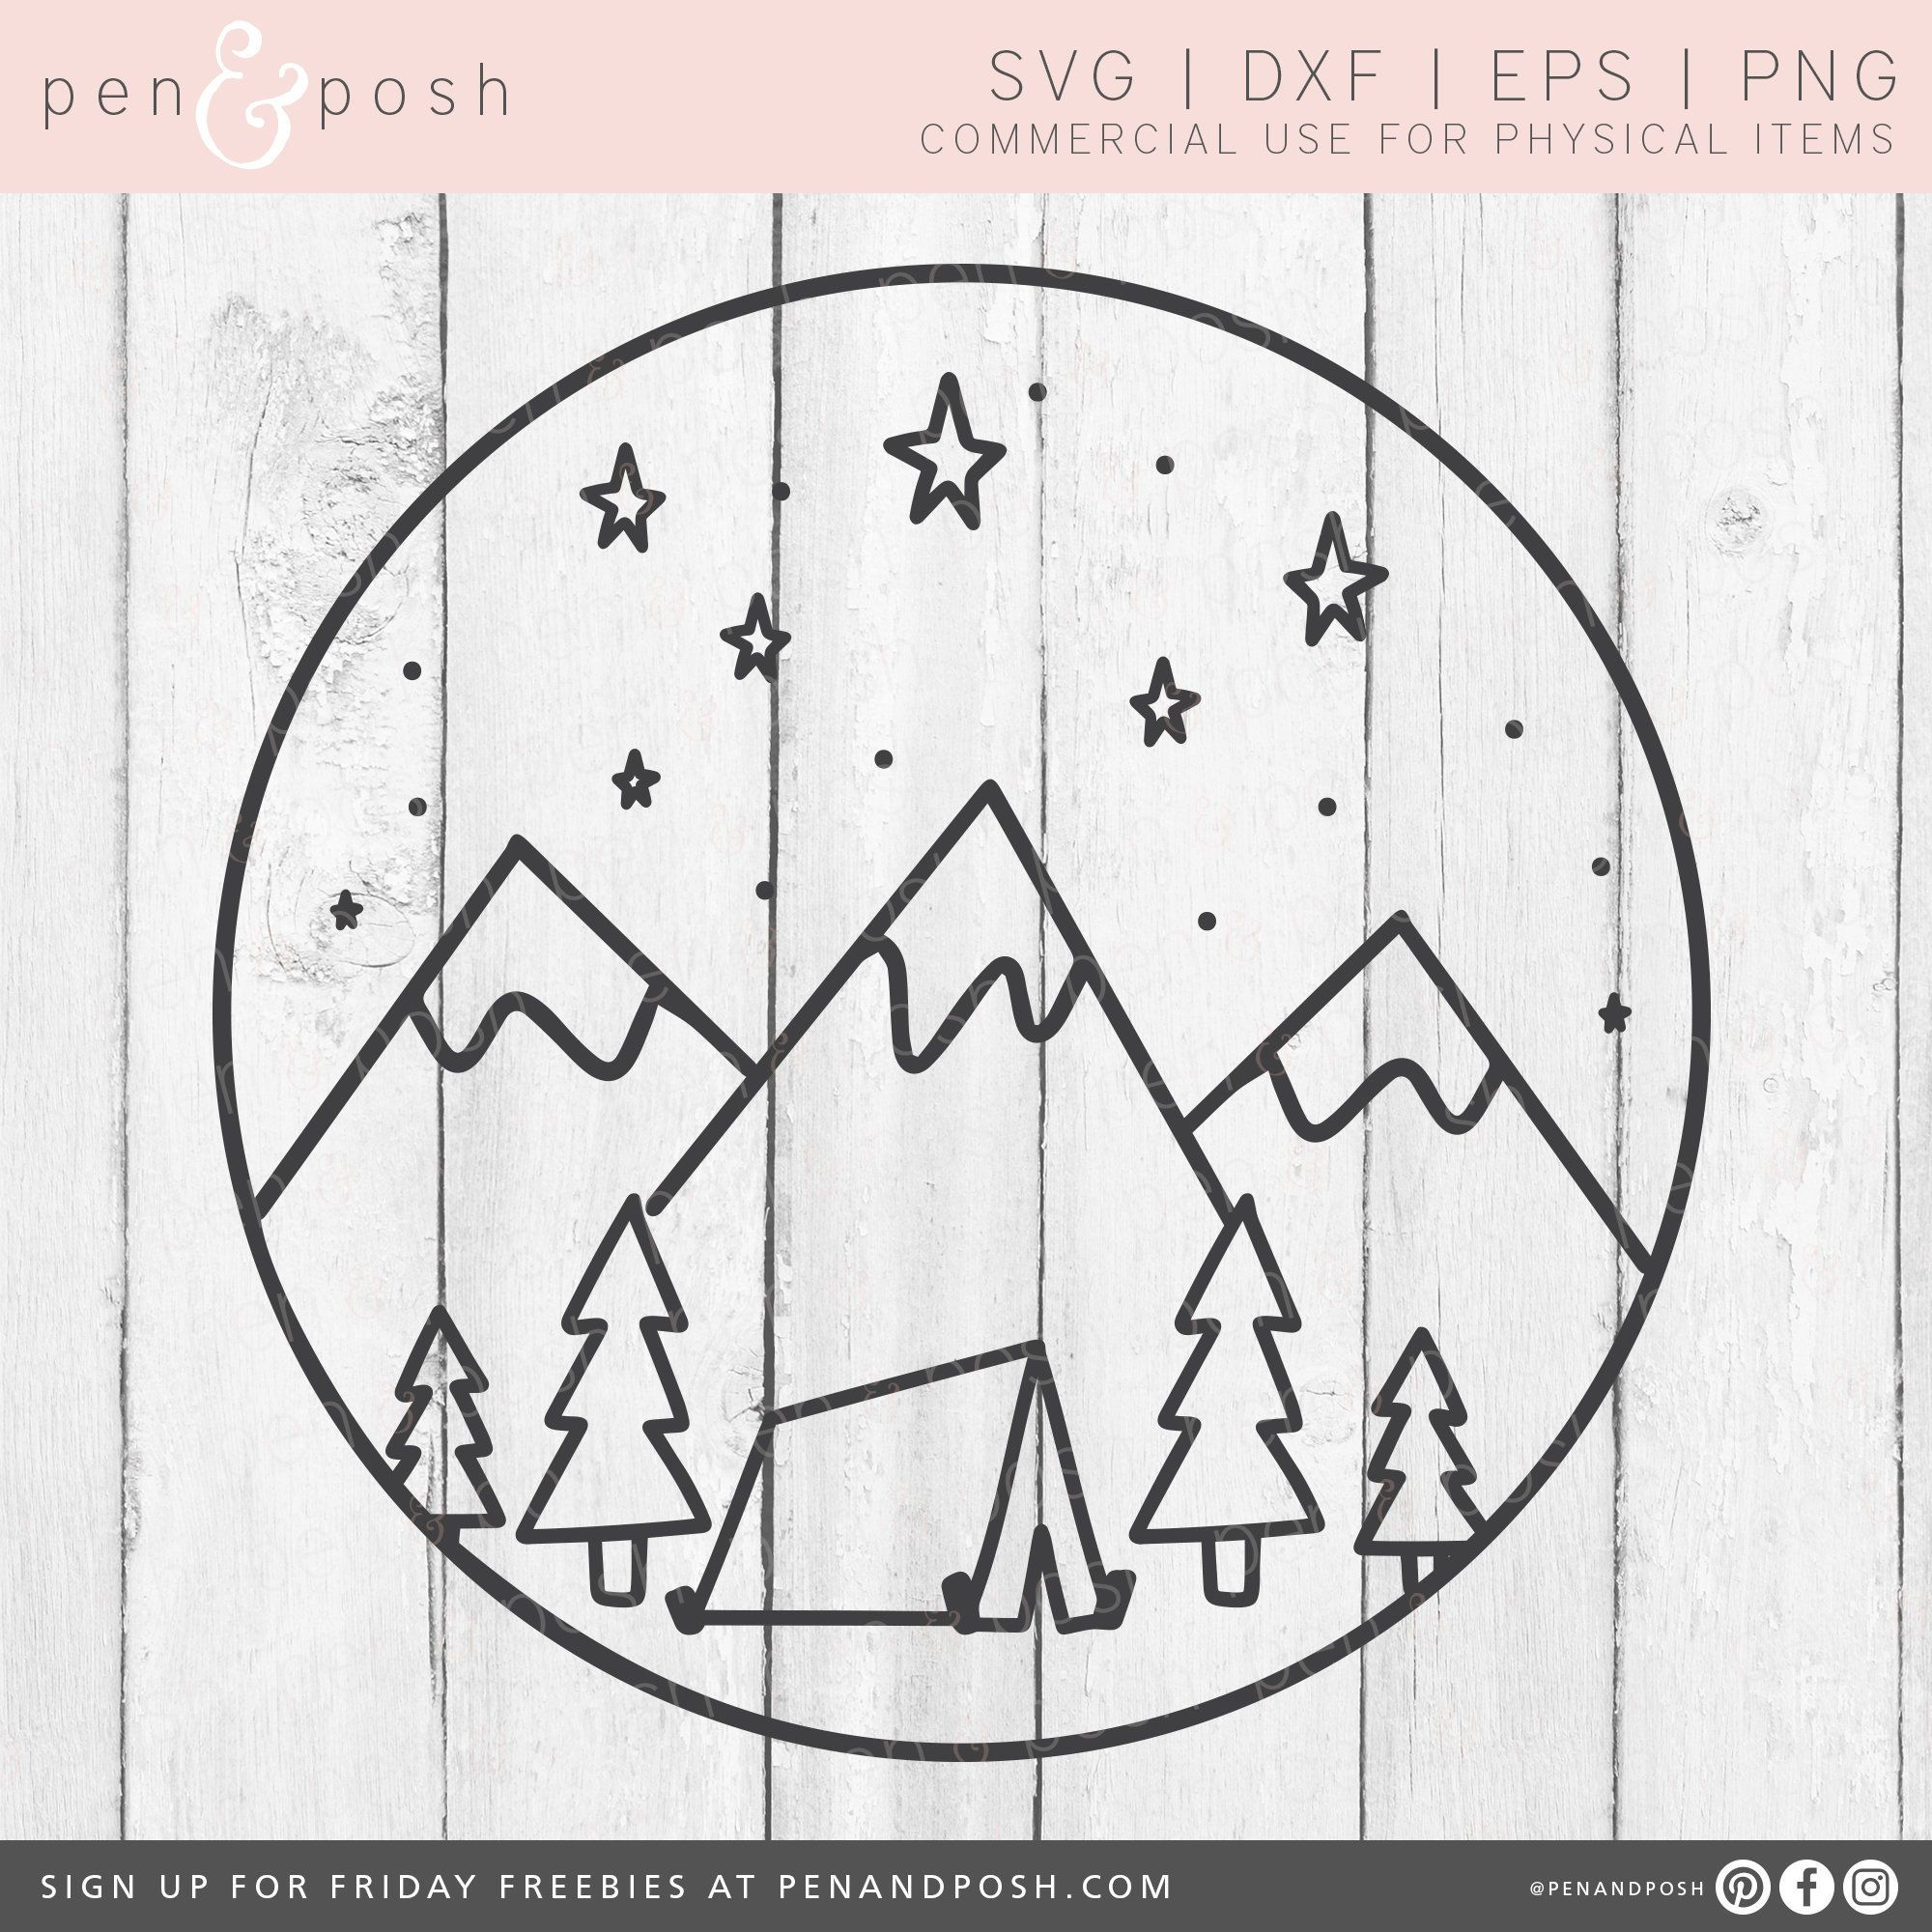 Clipart tent svg. Camping mountains handdrawn scene